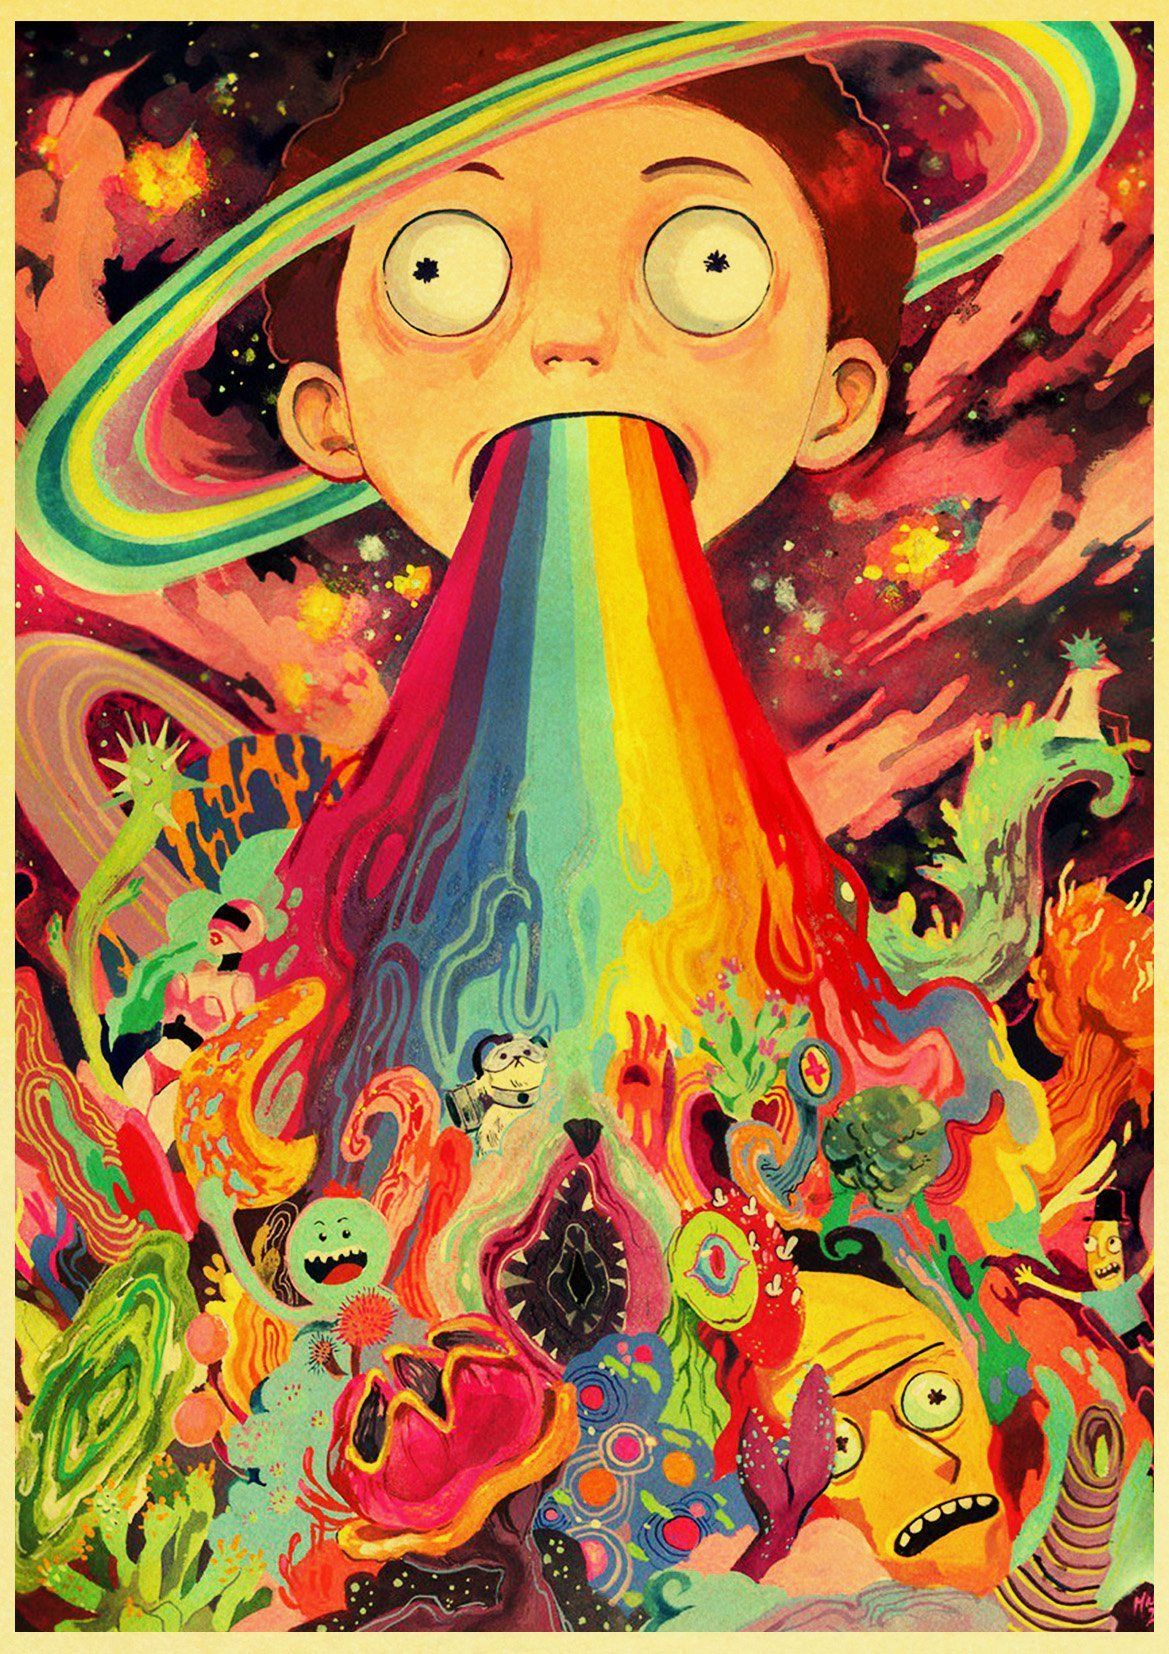 Cute Morty Smith Retro Poster In 2020 Rick Morty Poster Trippy